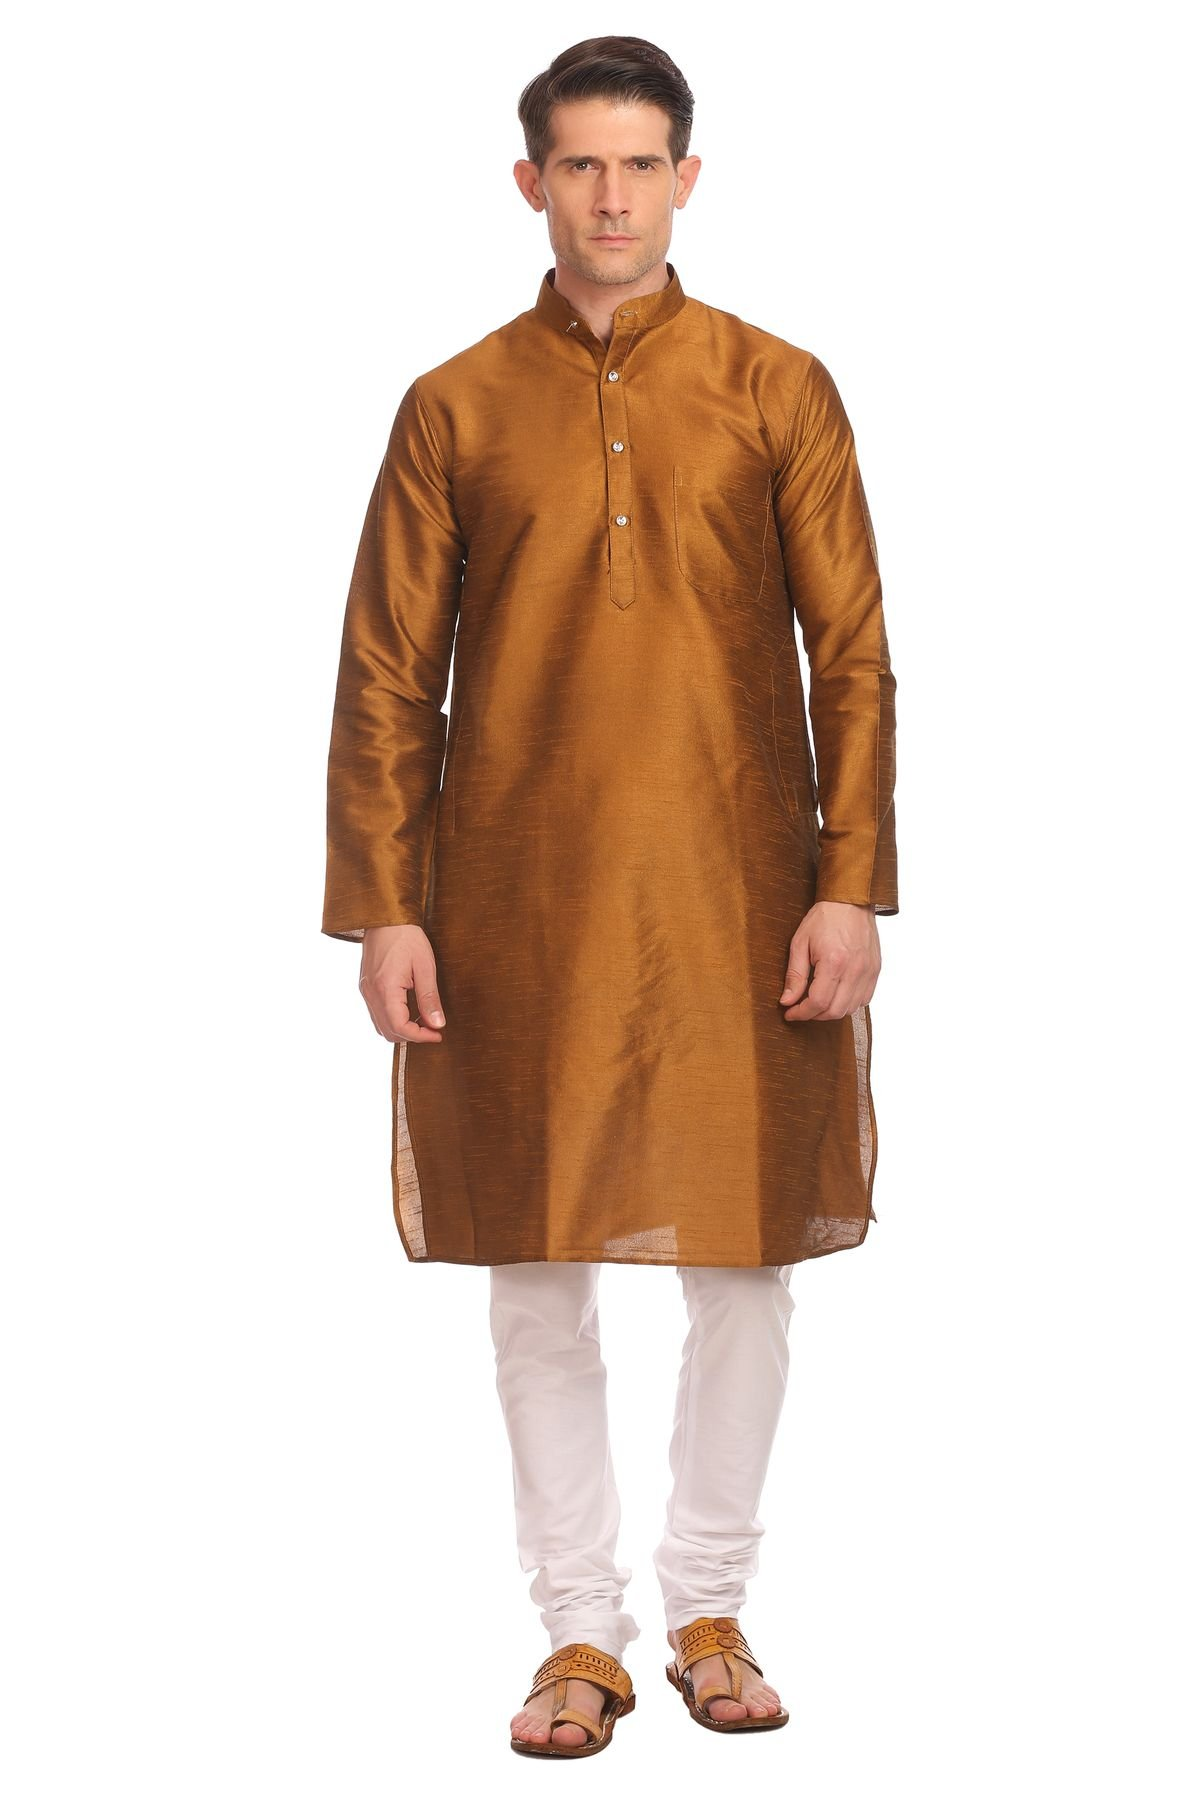 WINTAGE Men's Banarasi Art Silk Bandhgala Festive and Casual Gold Kurta Pyjama by WINTAGE